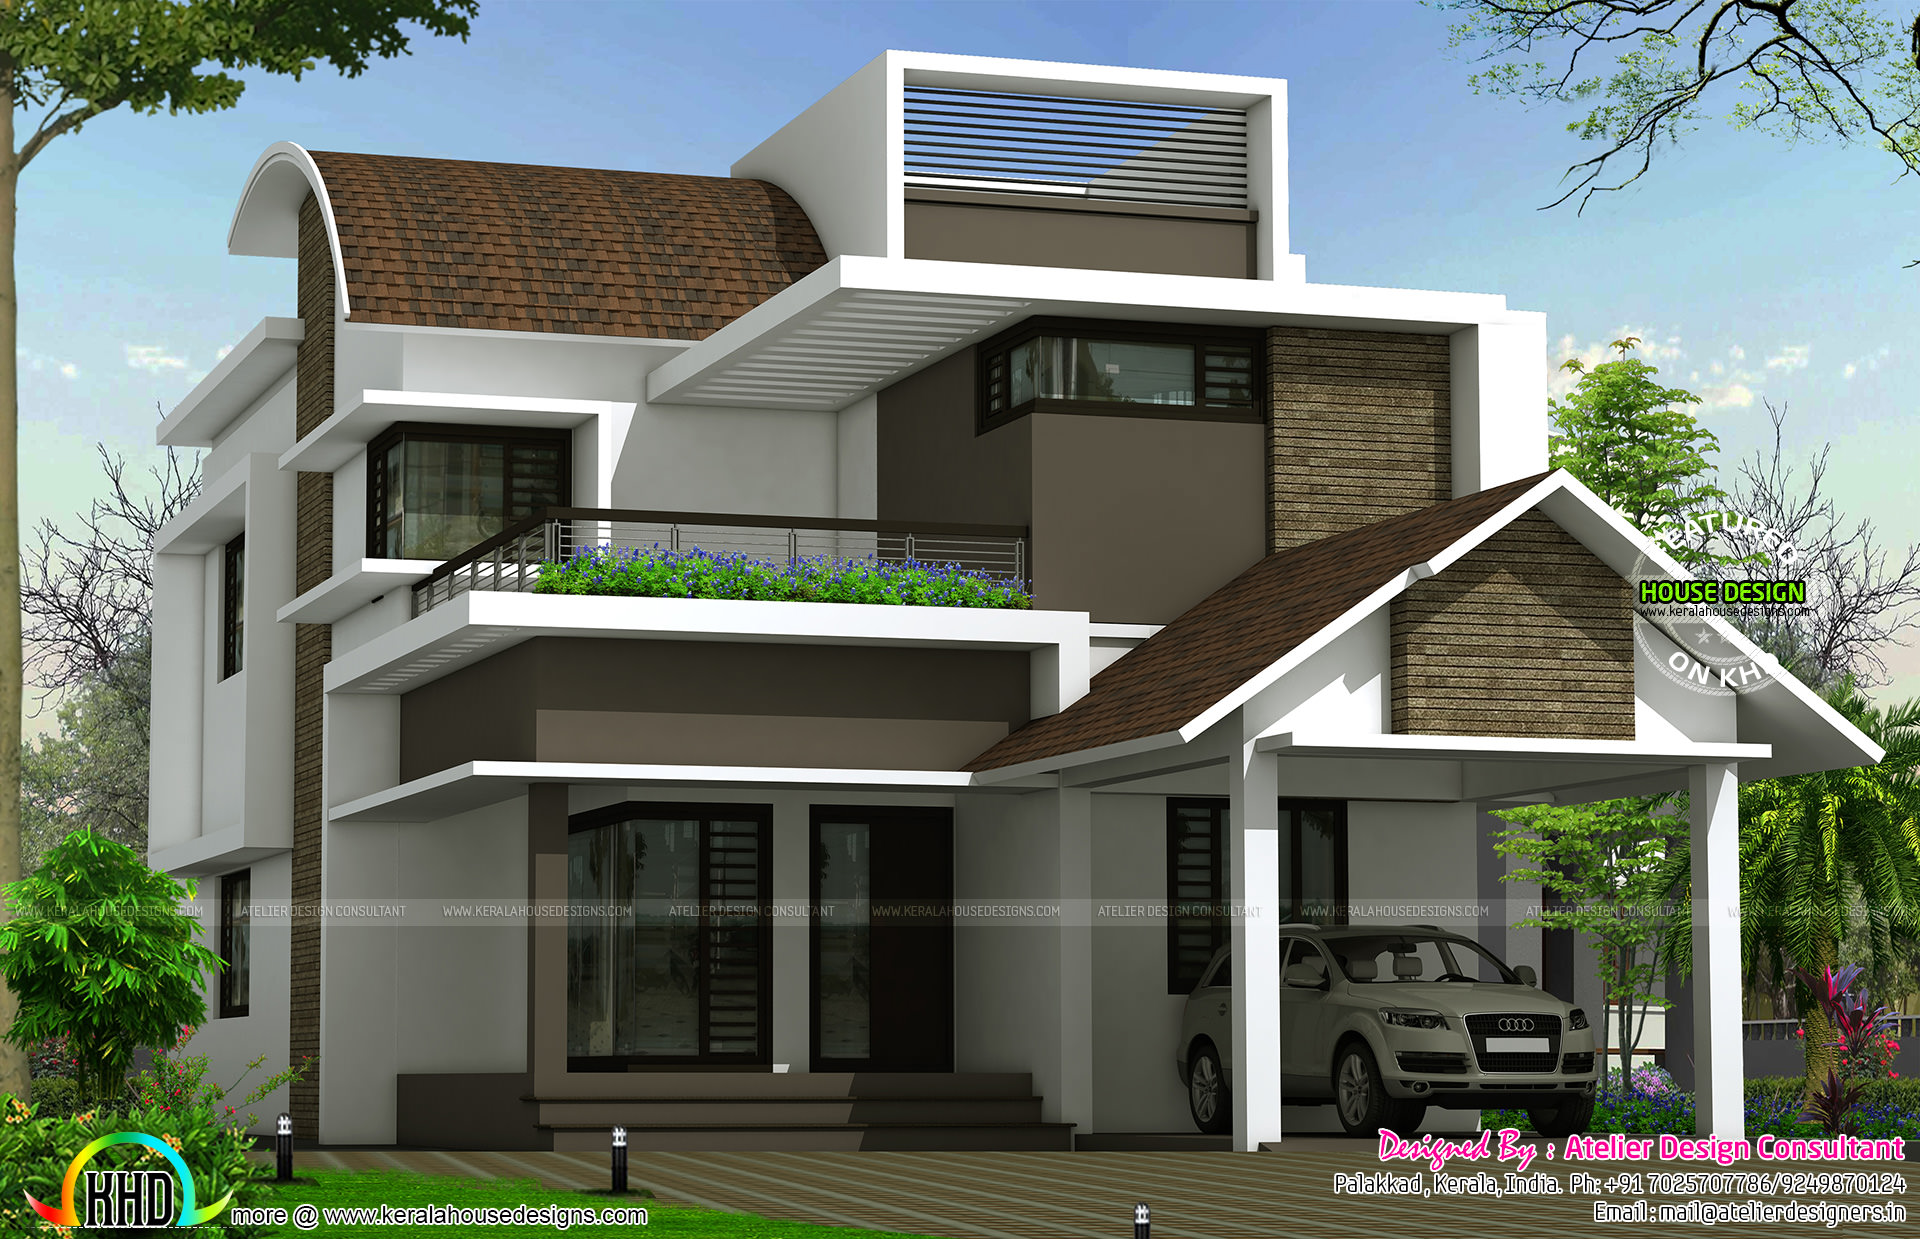 Curved roof mix contemporary 2620 sq ft home kerala home for Curved roof house plans